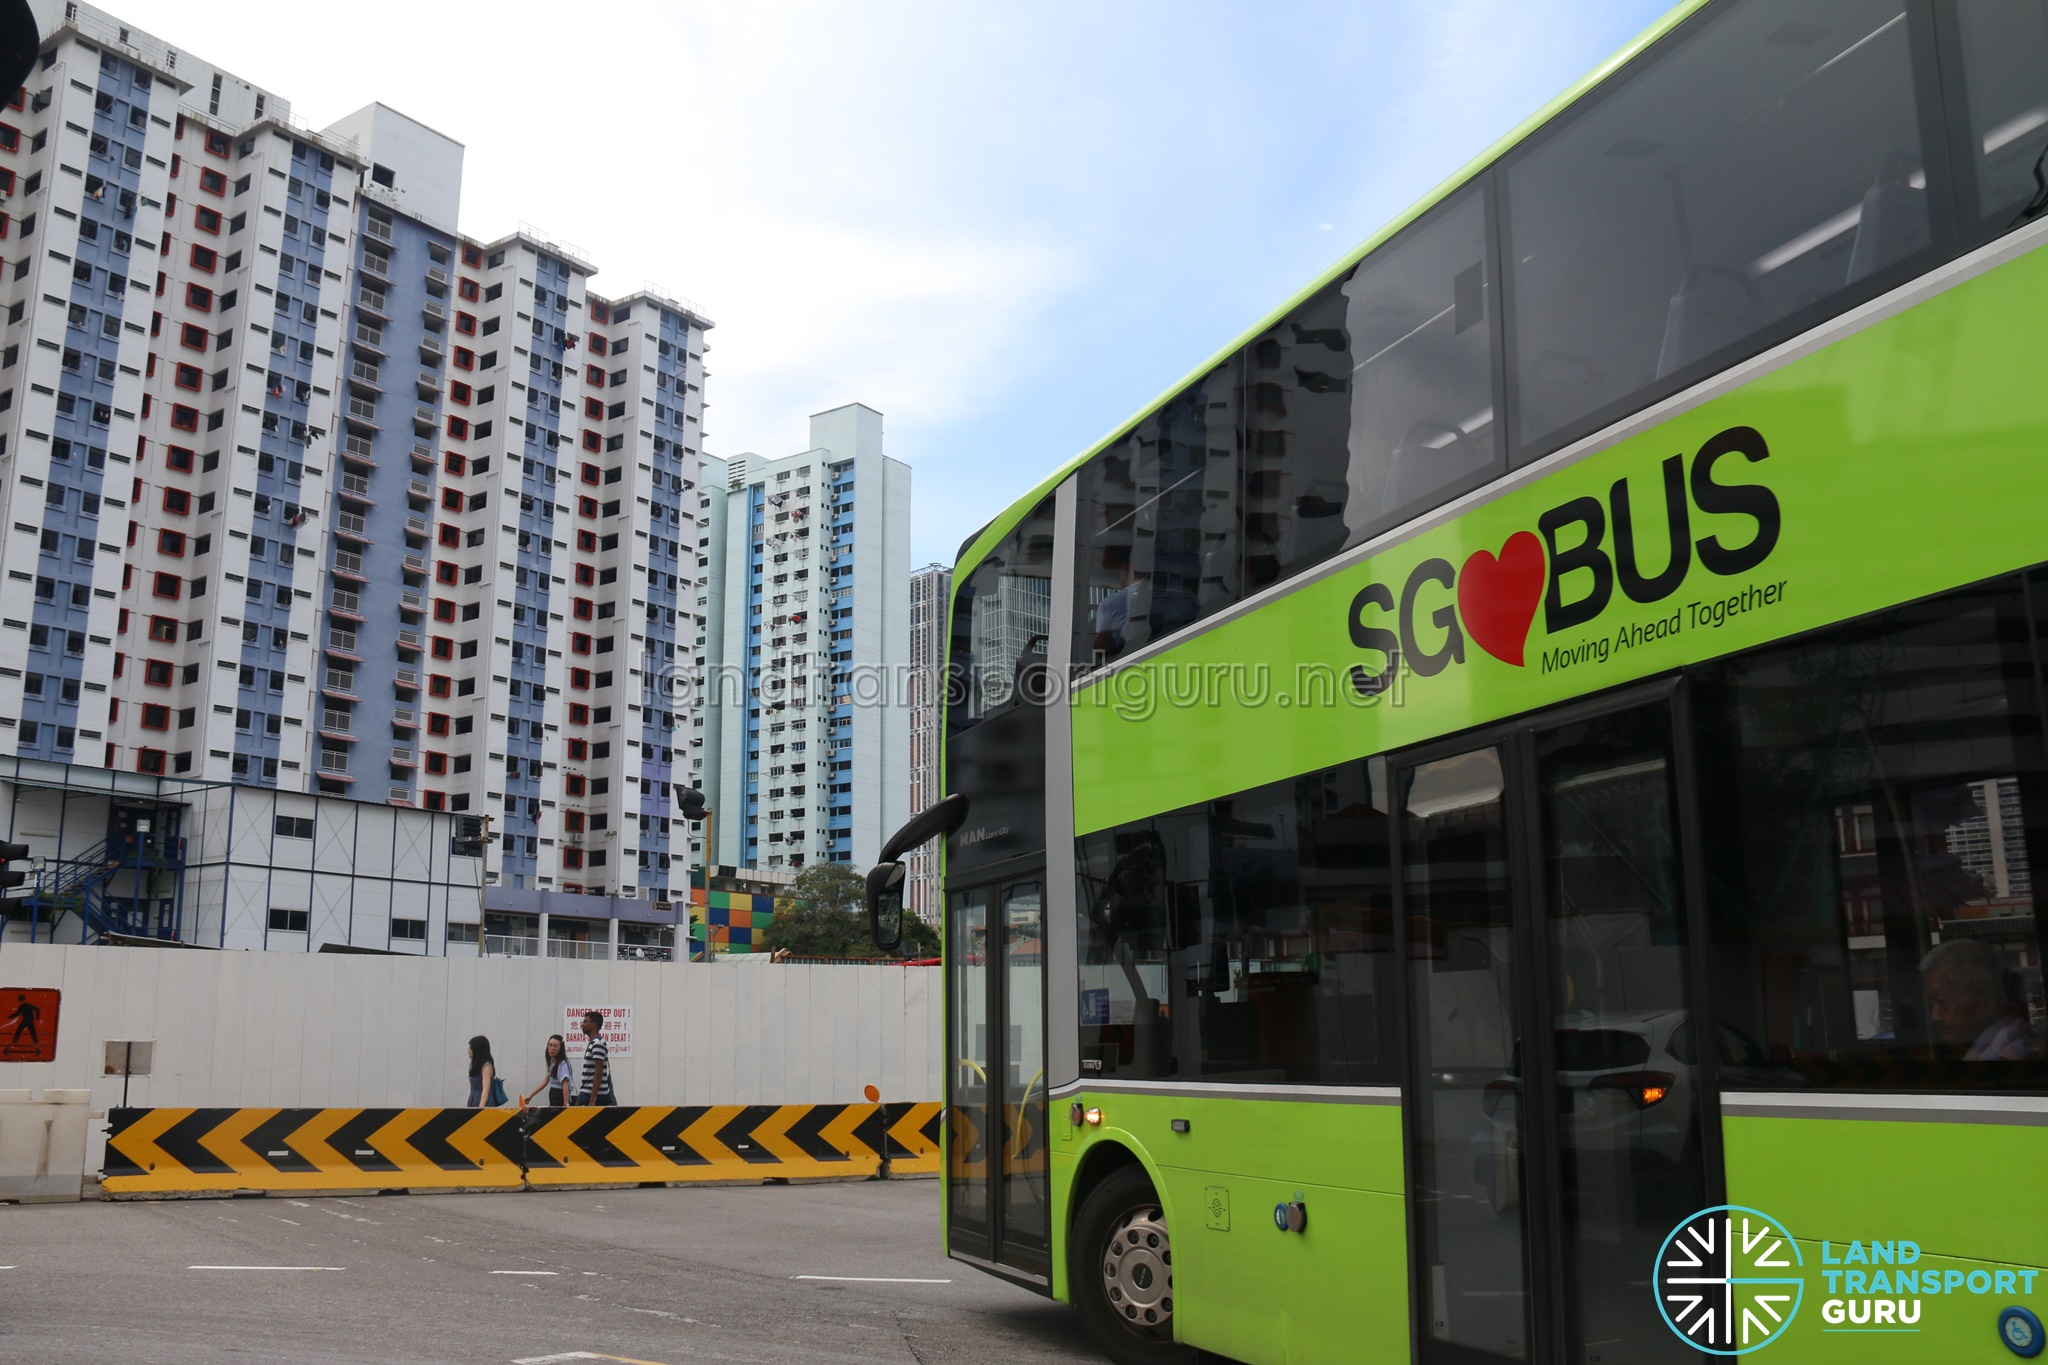 Bus Service Diversion for NDP 2019 Combined Rehearsal (29 Jun